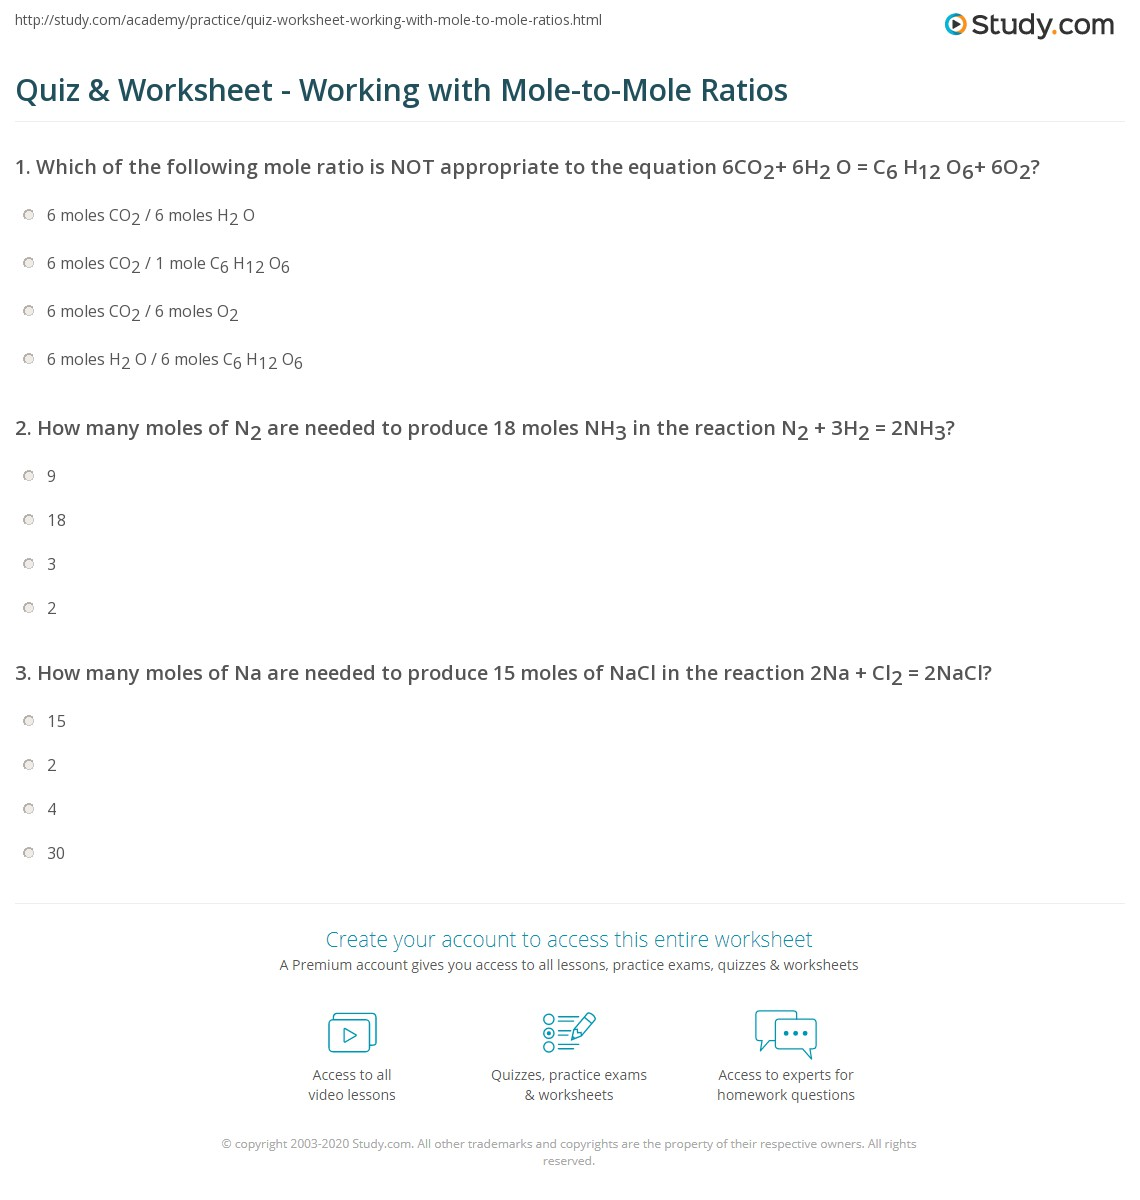 Quiz Worksheet Working With Mole To Mole Ratios Study